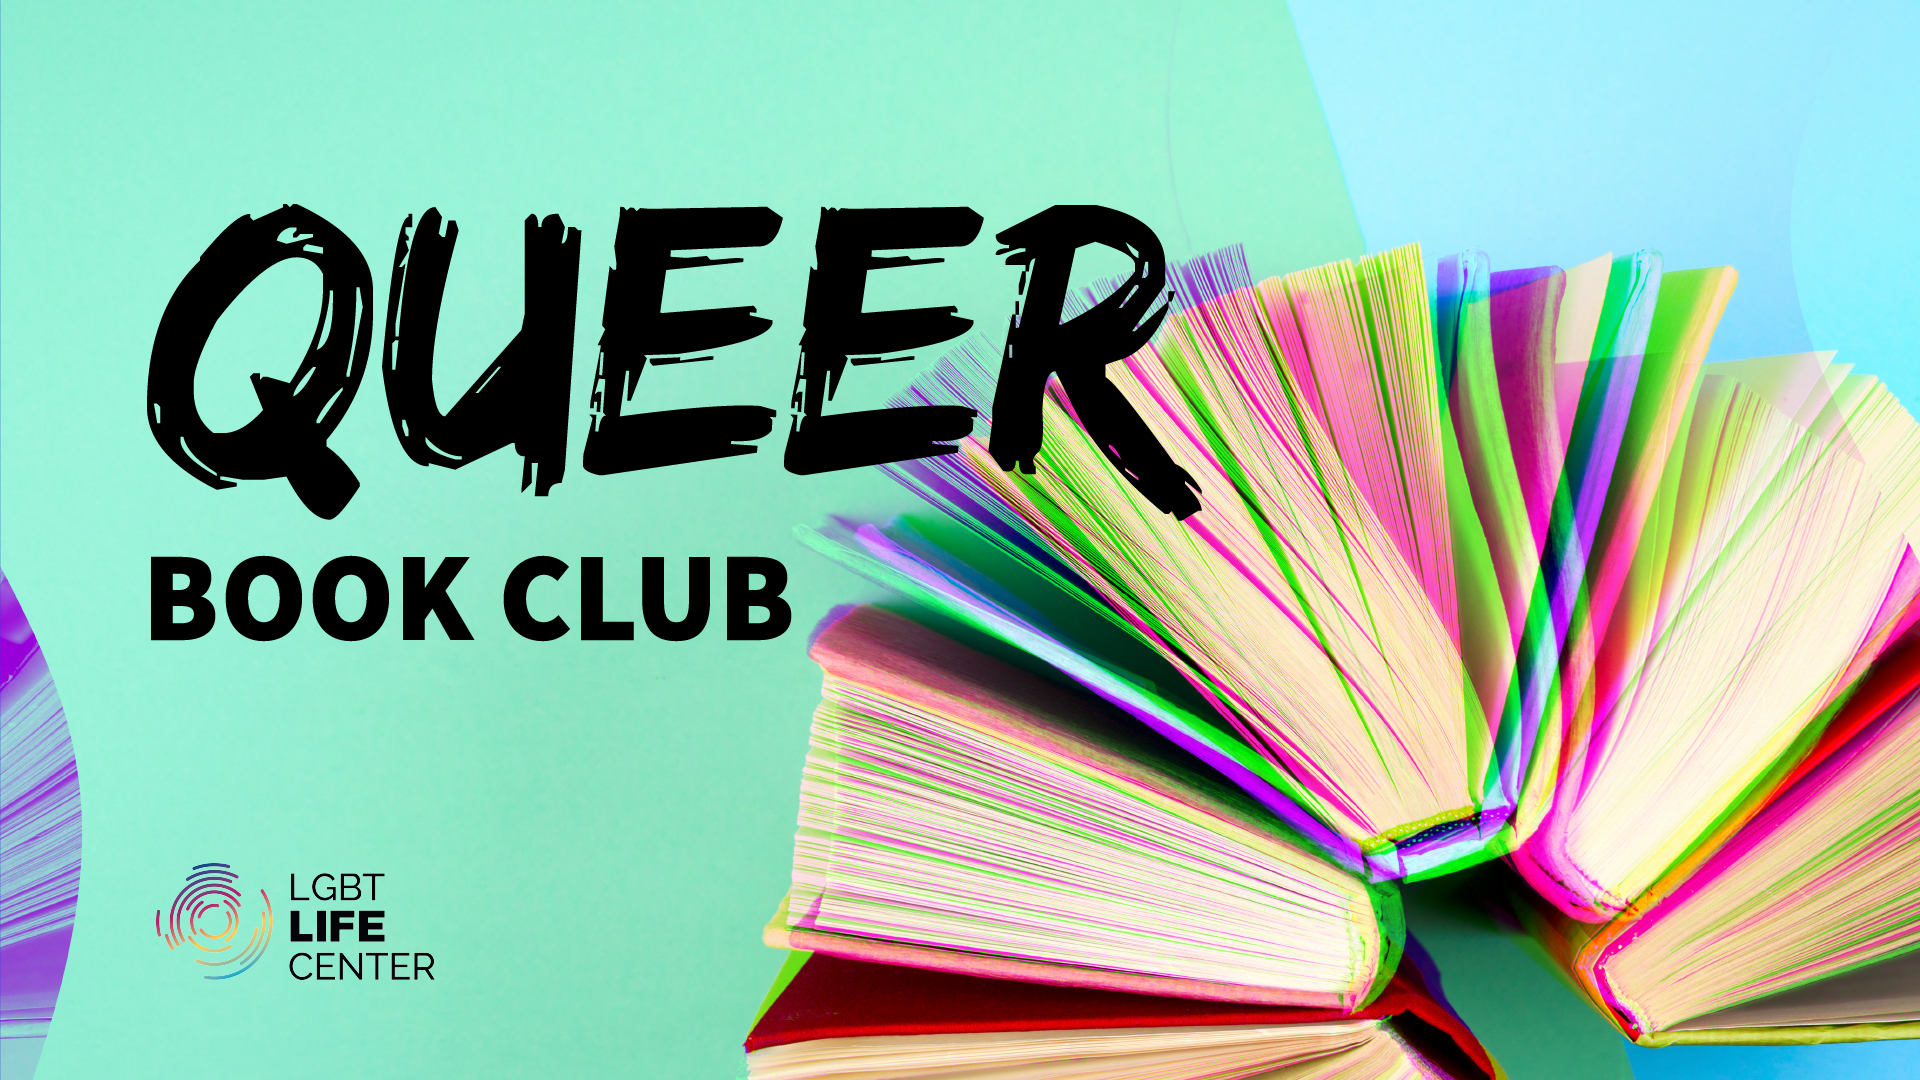 Queer Book Club LGBT Life Center